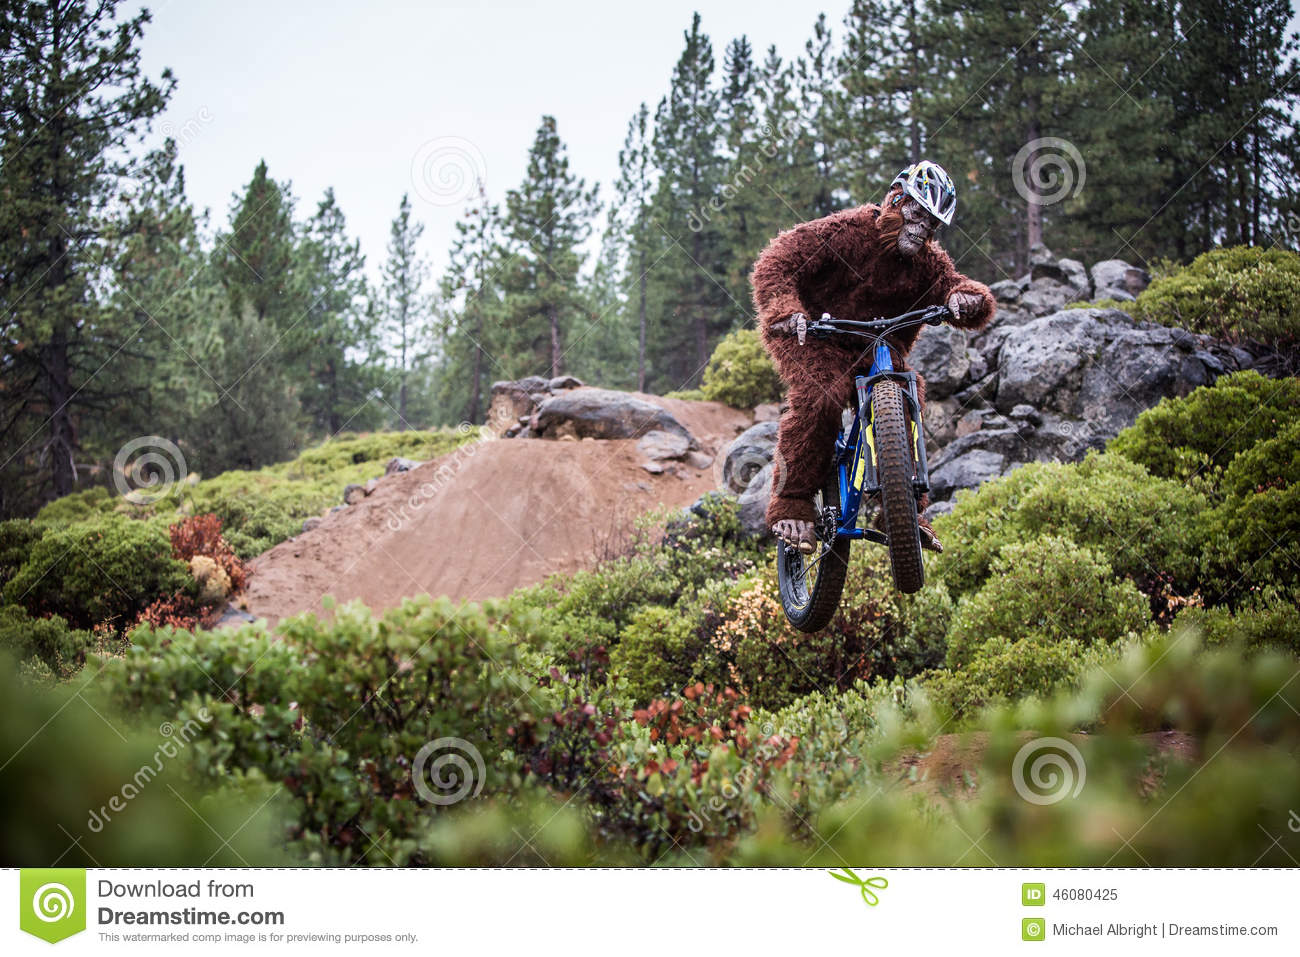 Sasquatch (Yeti) Jumps A Bicycle In The Air